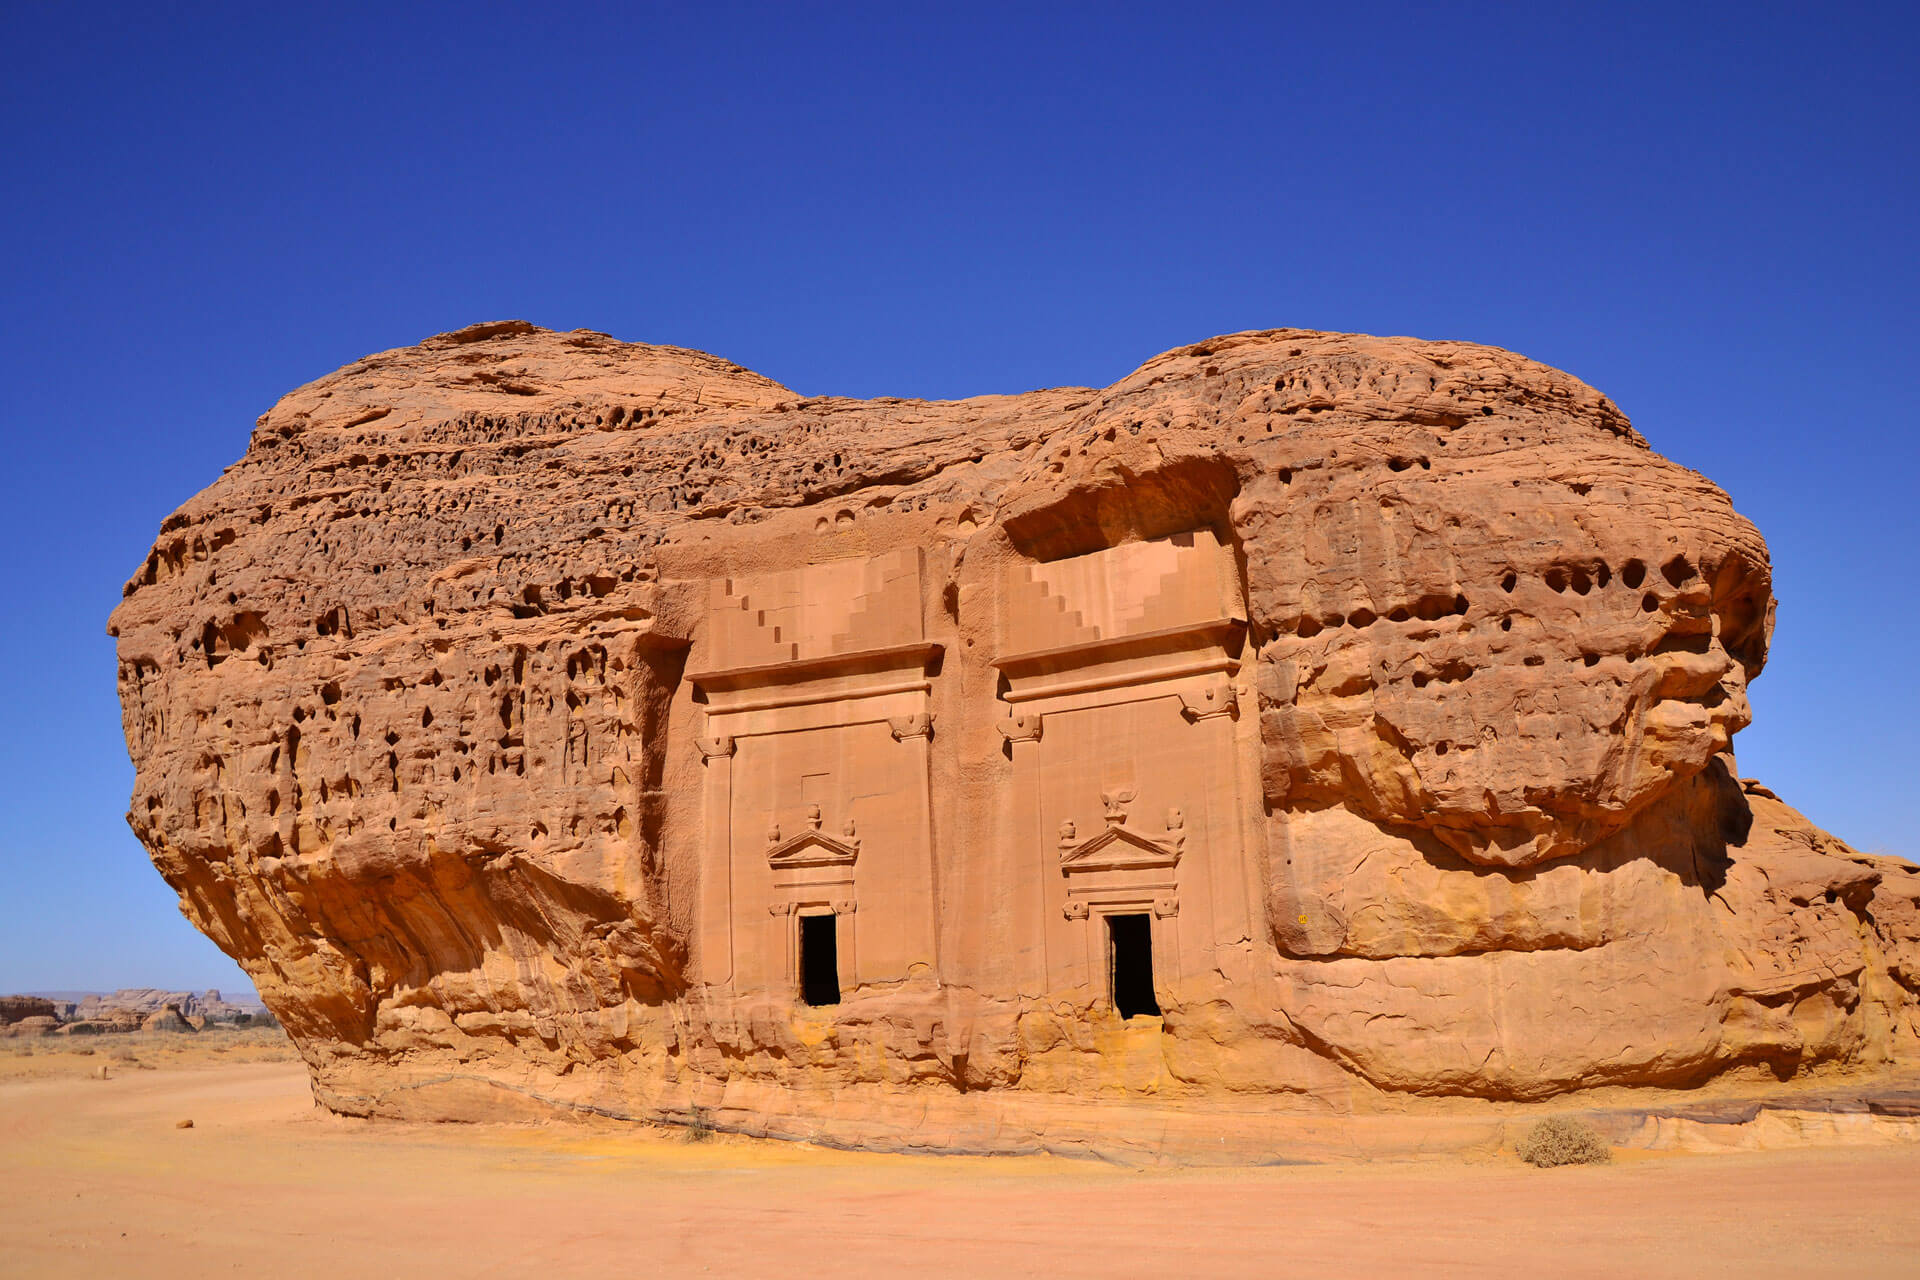 Riyadh, Madain Saleh, Jeddah Program